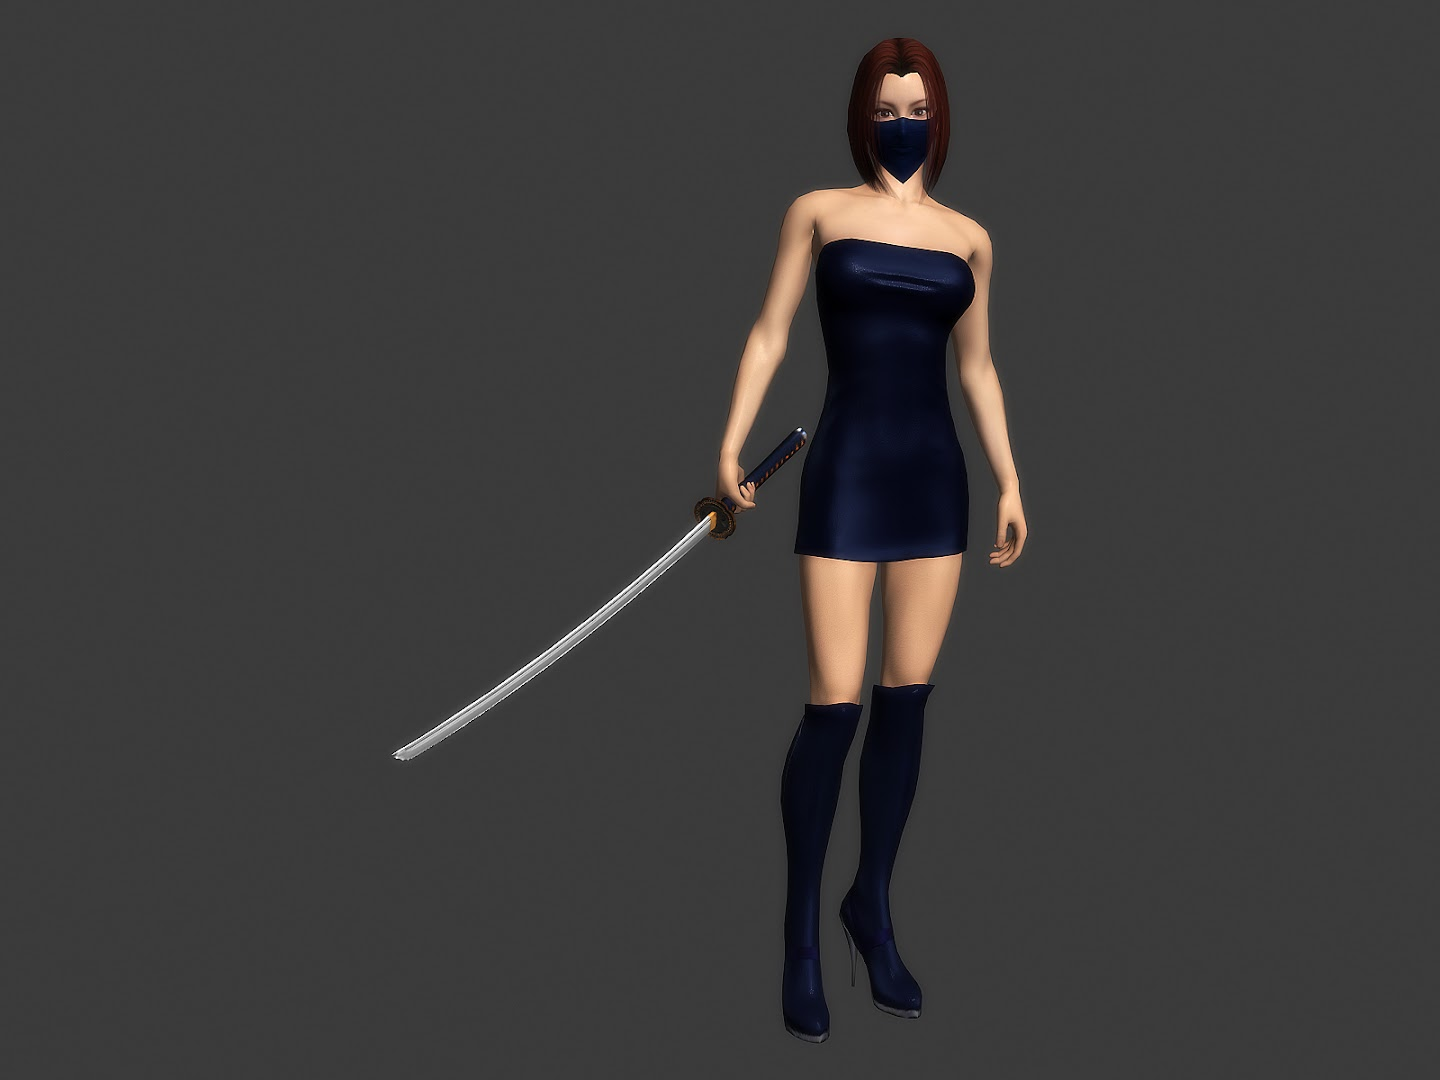 [3dFoin] New female ninja and 55% off sale :D 04